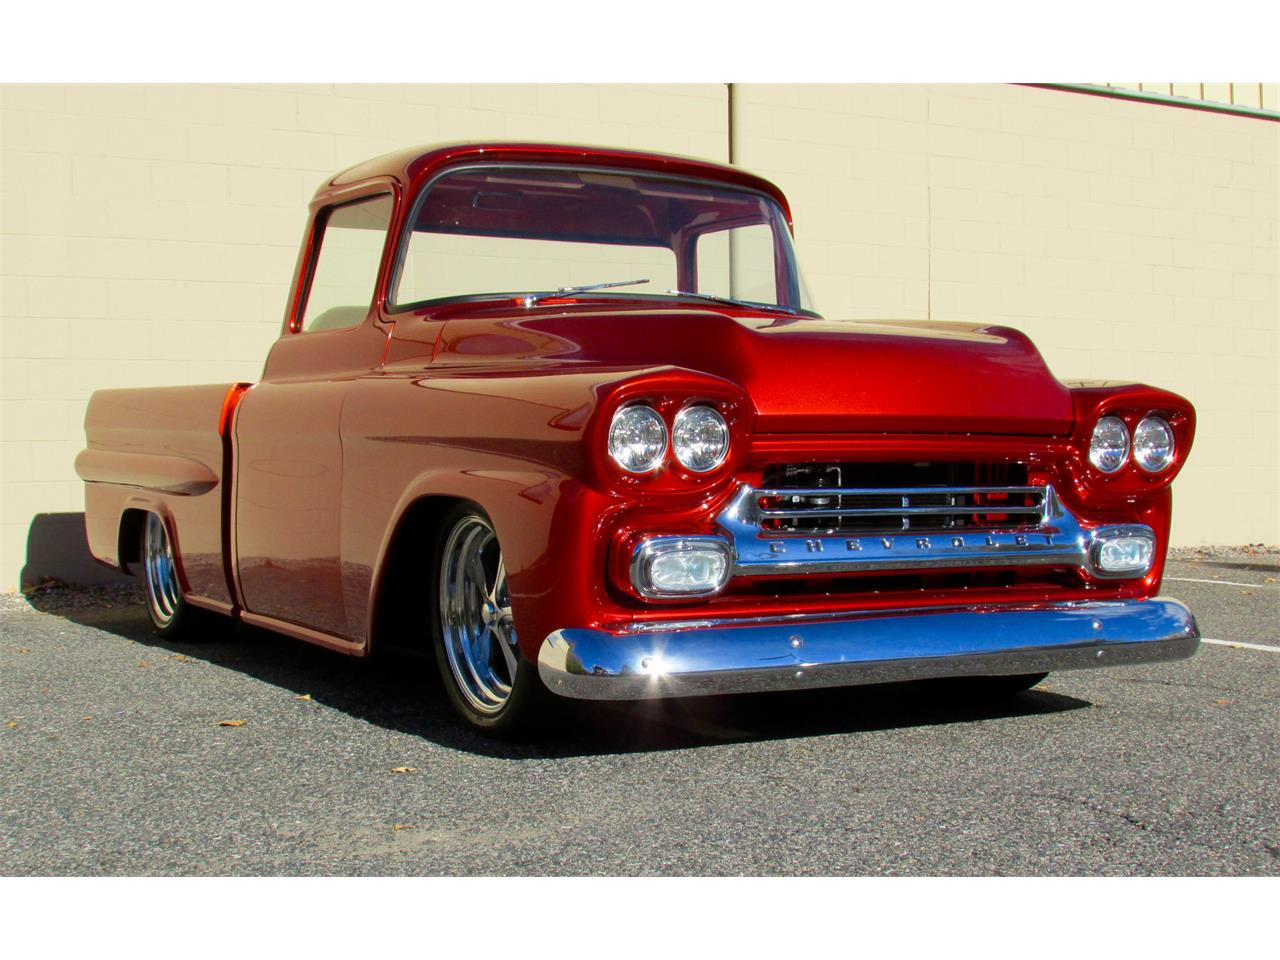 Large Picture of Classic '59 Chevrolet Fleetside Custom Pickup Truck  Offered by a Private Seller - JPTV